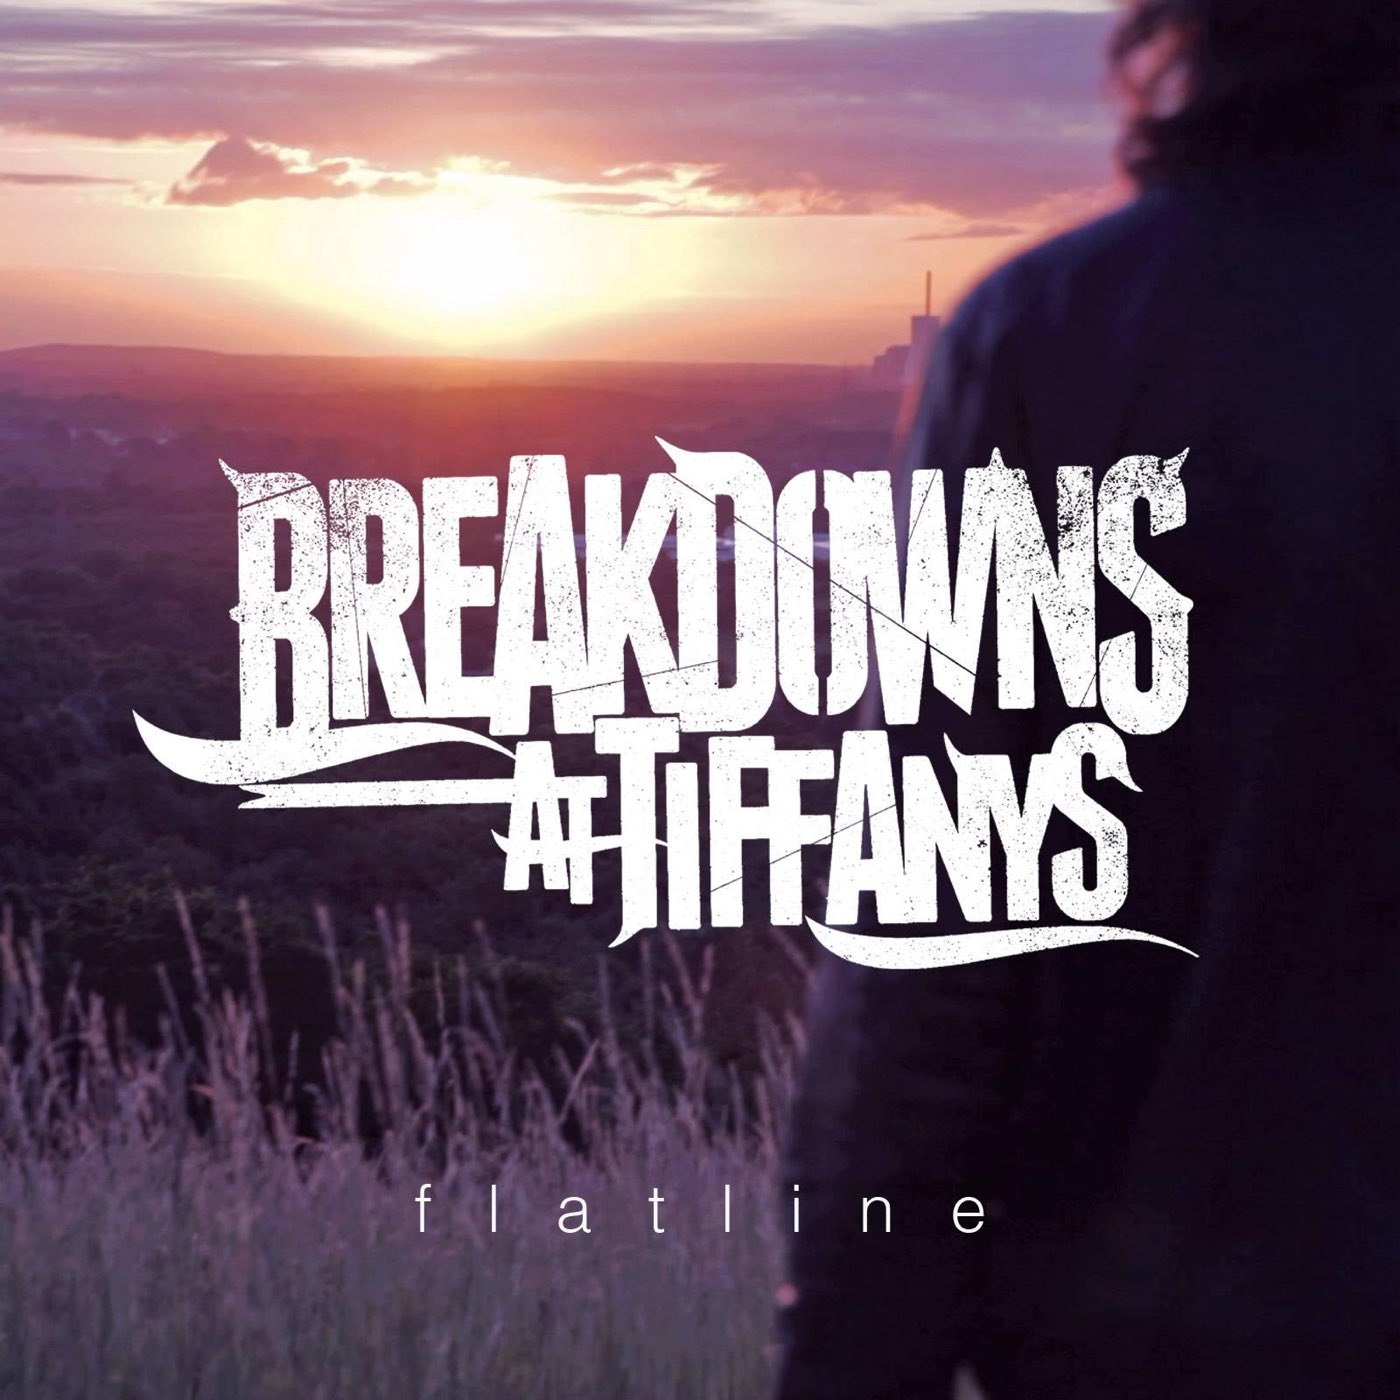 Breakdowns At Tiffany's - Flatline [single] (2013)